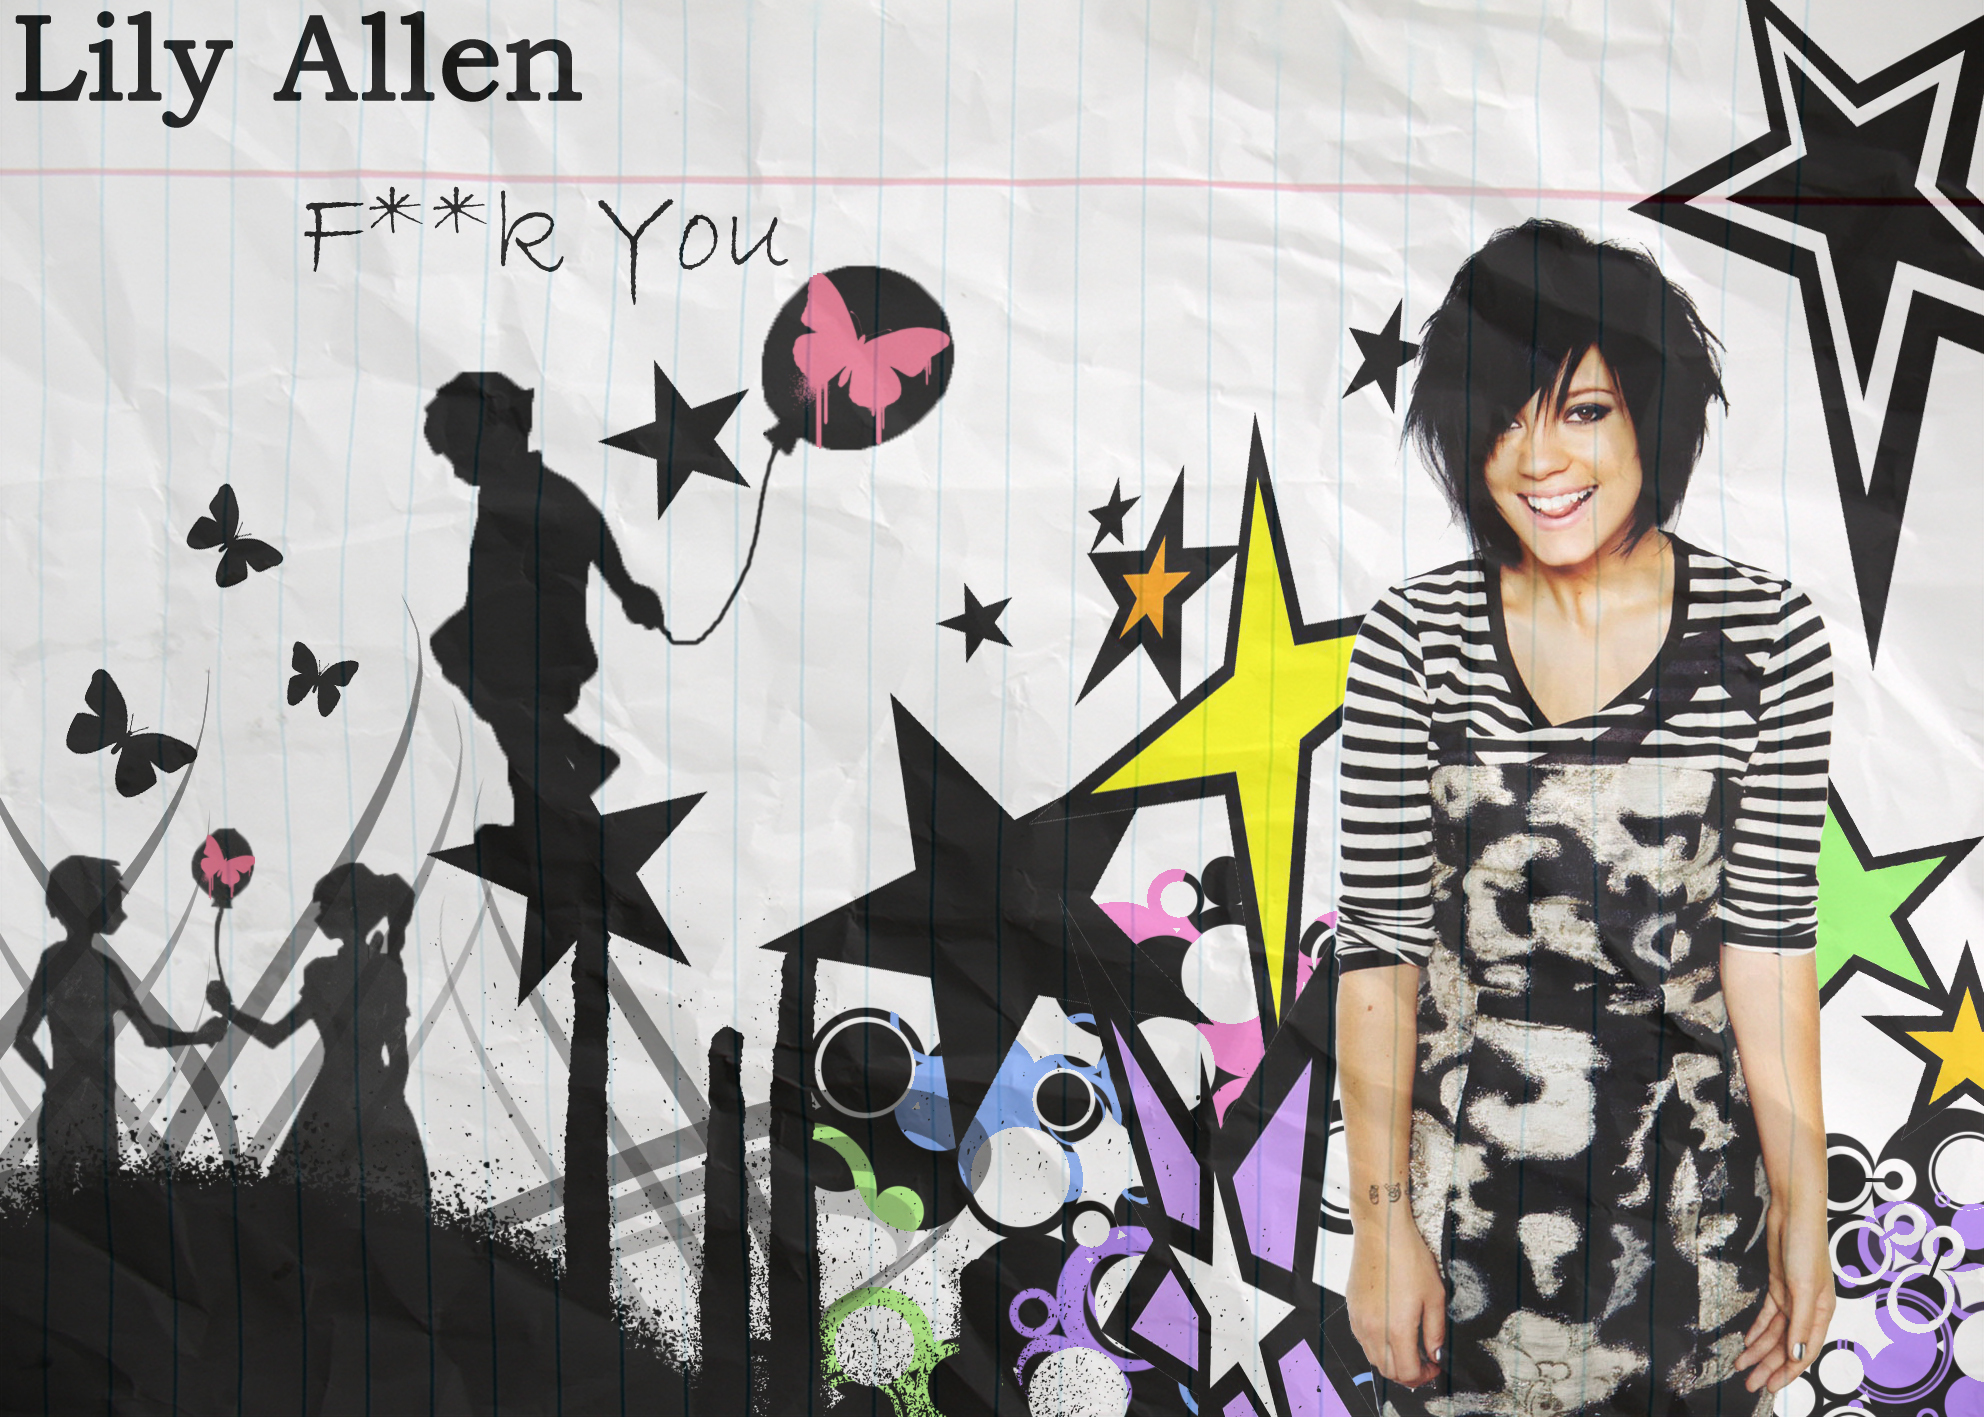 Lily Allen FUCK YOU Wallpaper